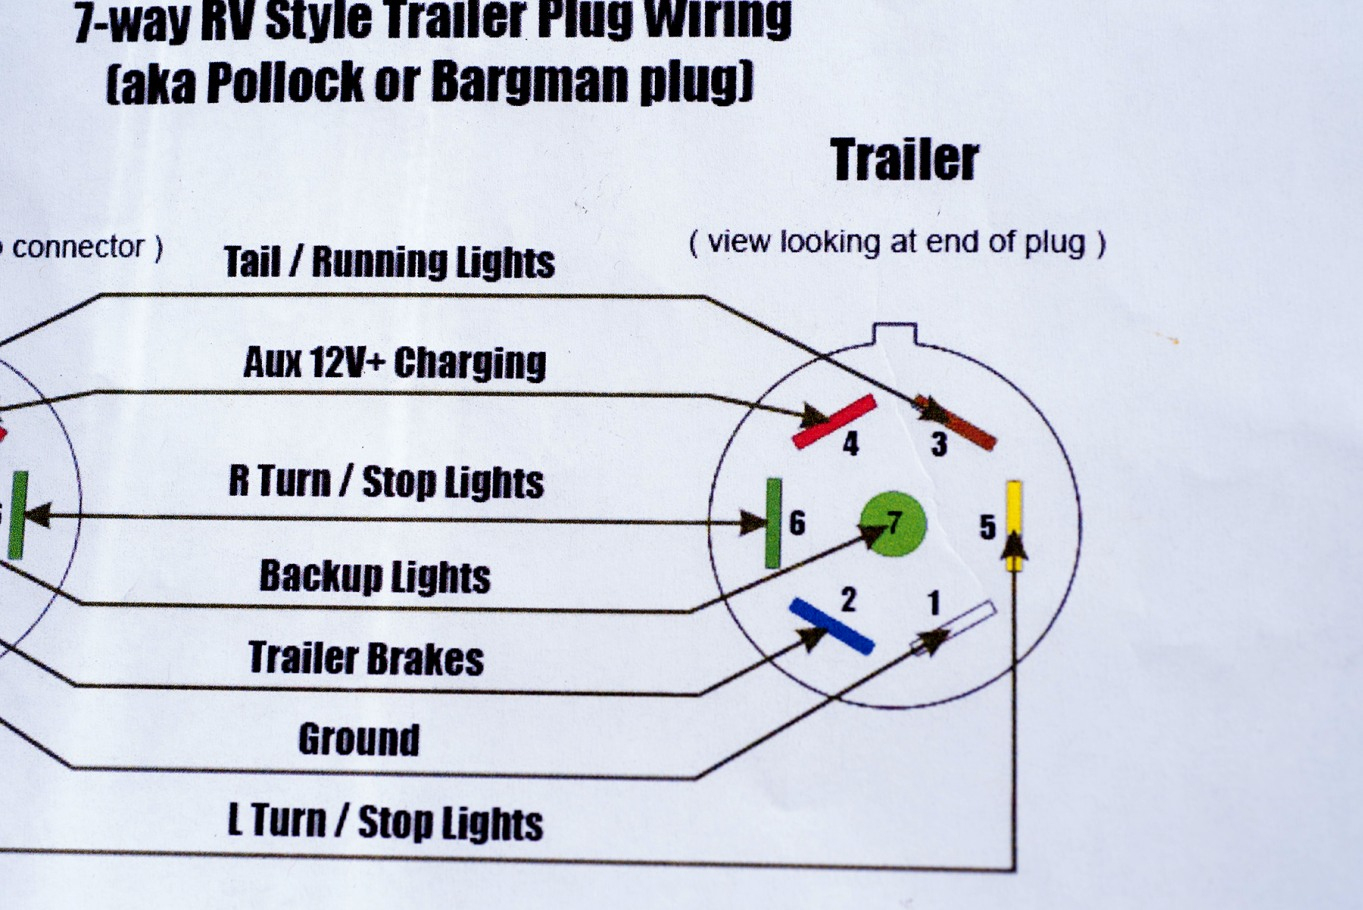 7 Round Trailer Wiring Diagram - Wiring Diagrams Hubs - Trailer Wiring Diagram Round